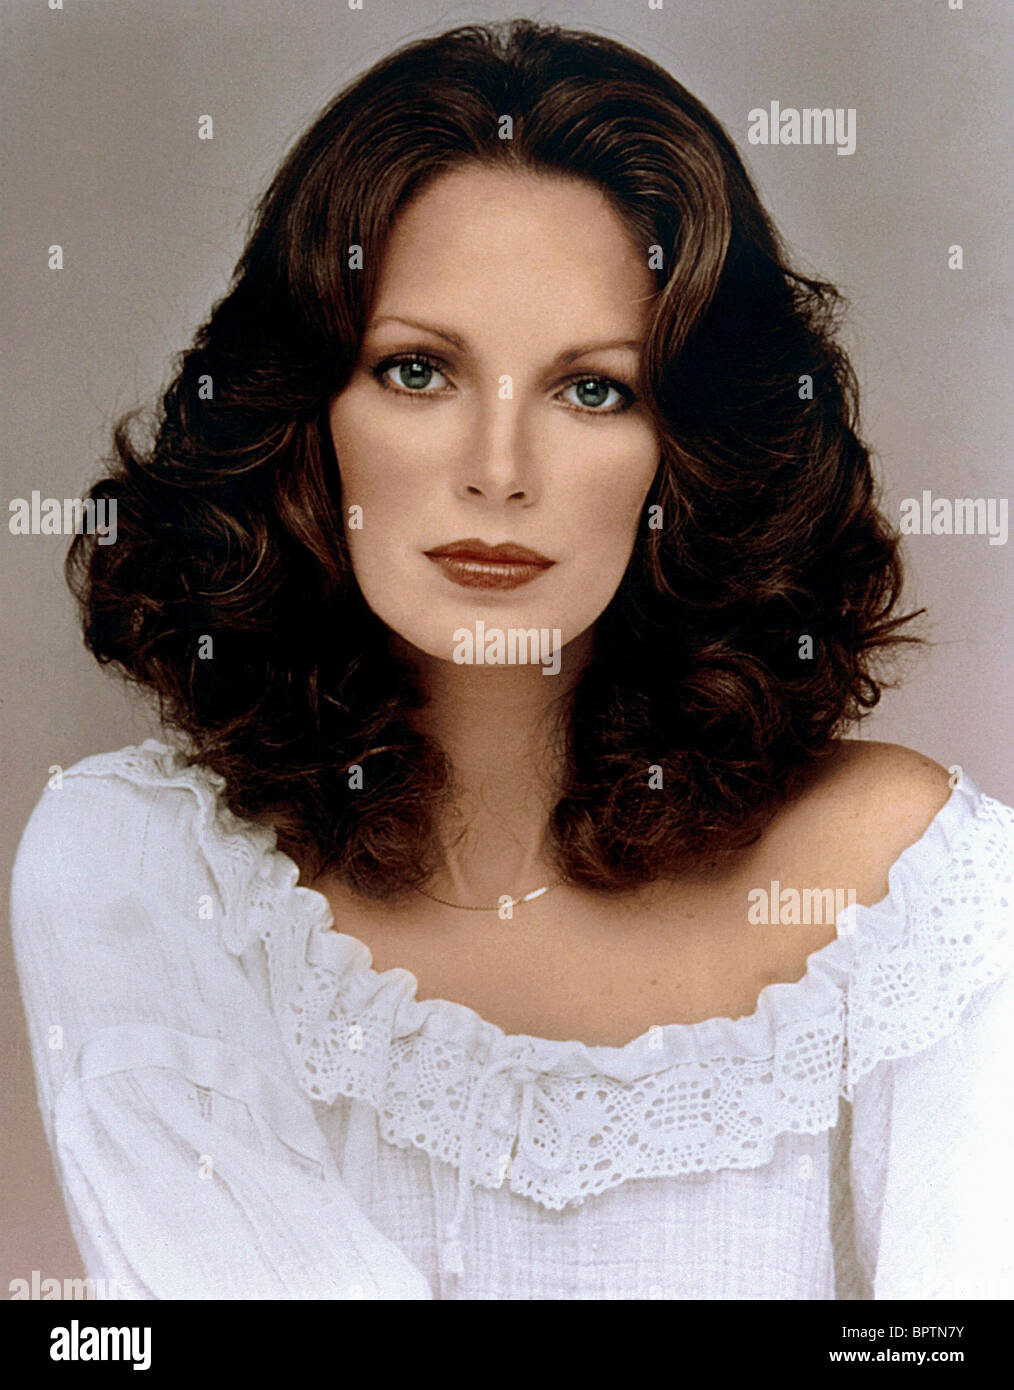 1b7bf1fcaf Jaclyn Smith Stock Photos   Jaclyn Smith Stock Images - Alamy